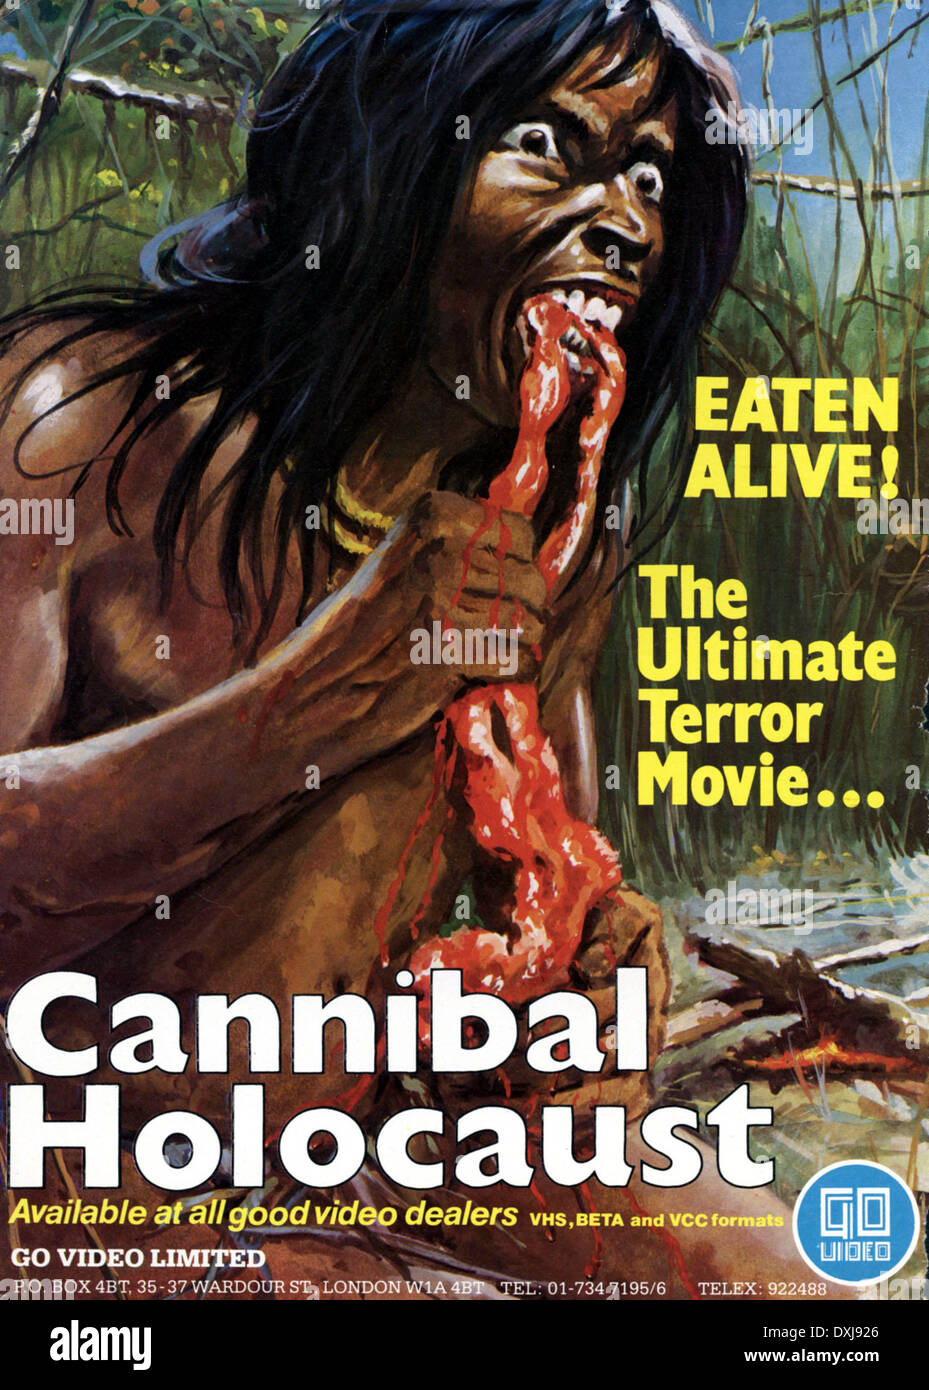 Cannibal holocaust 1980 full movie download